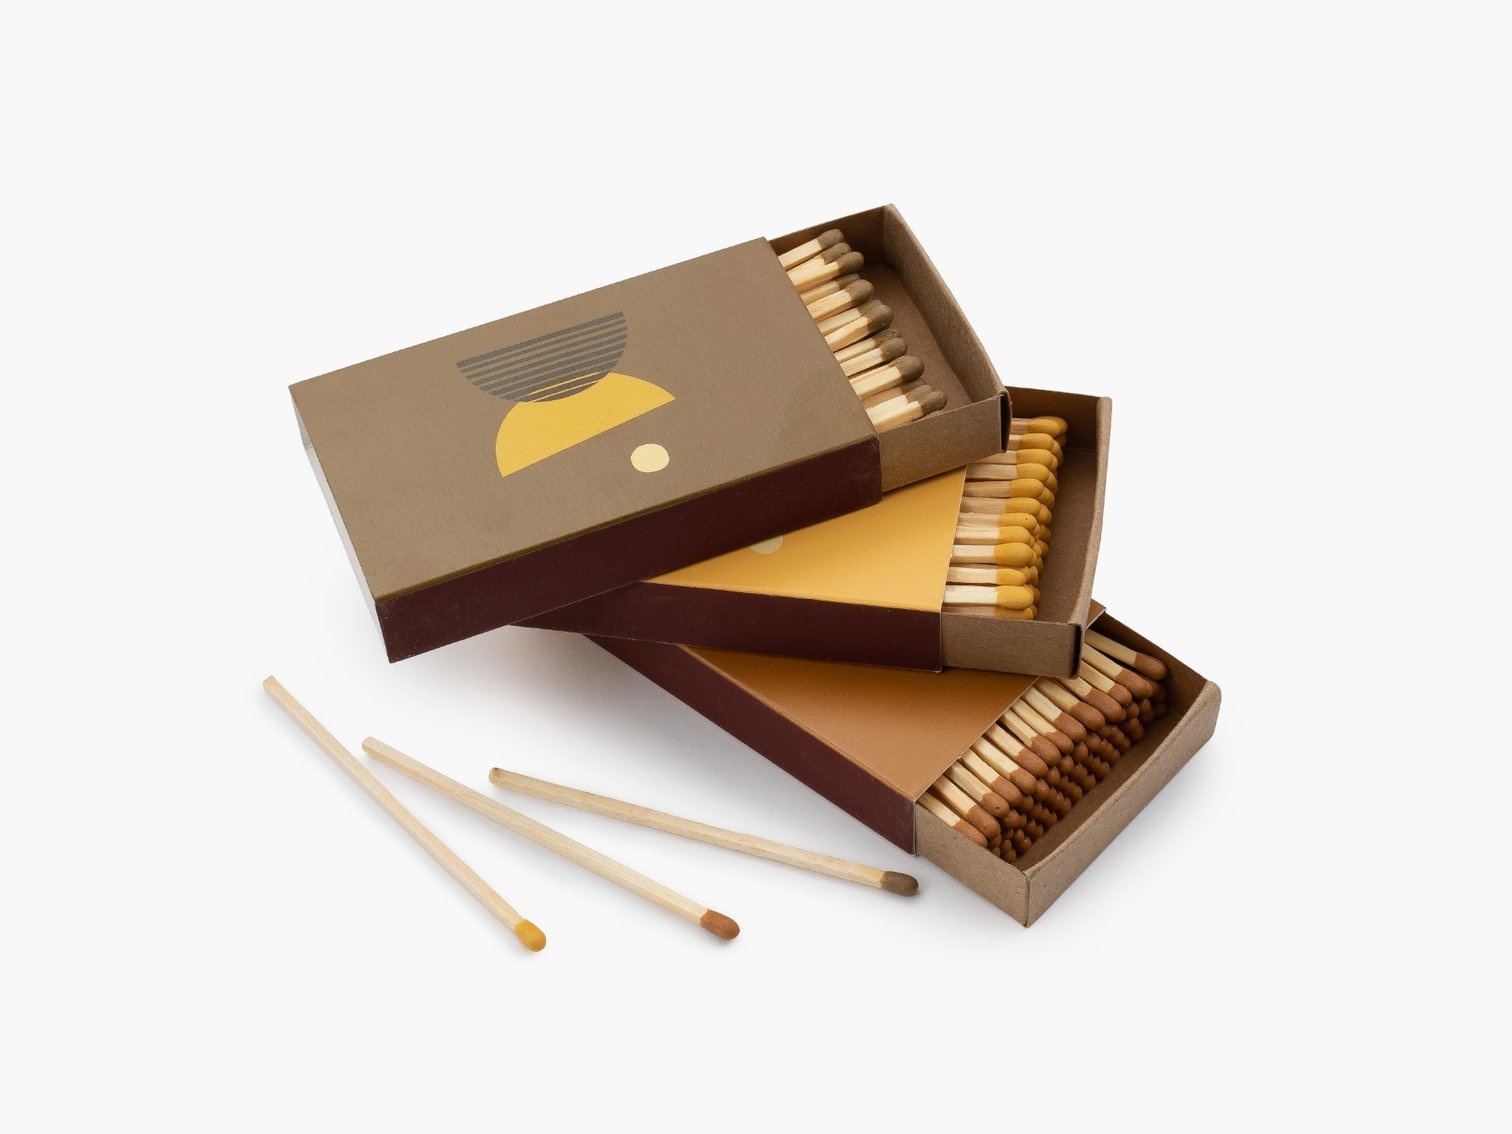 P F Candle Co. Golden Hour Matchbooks